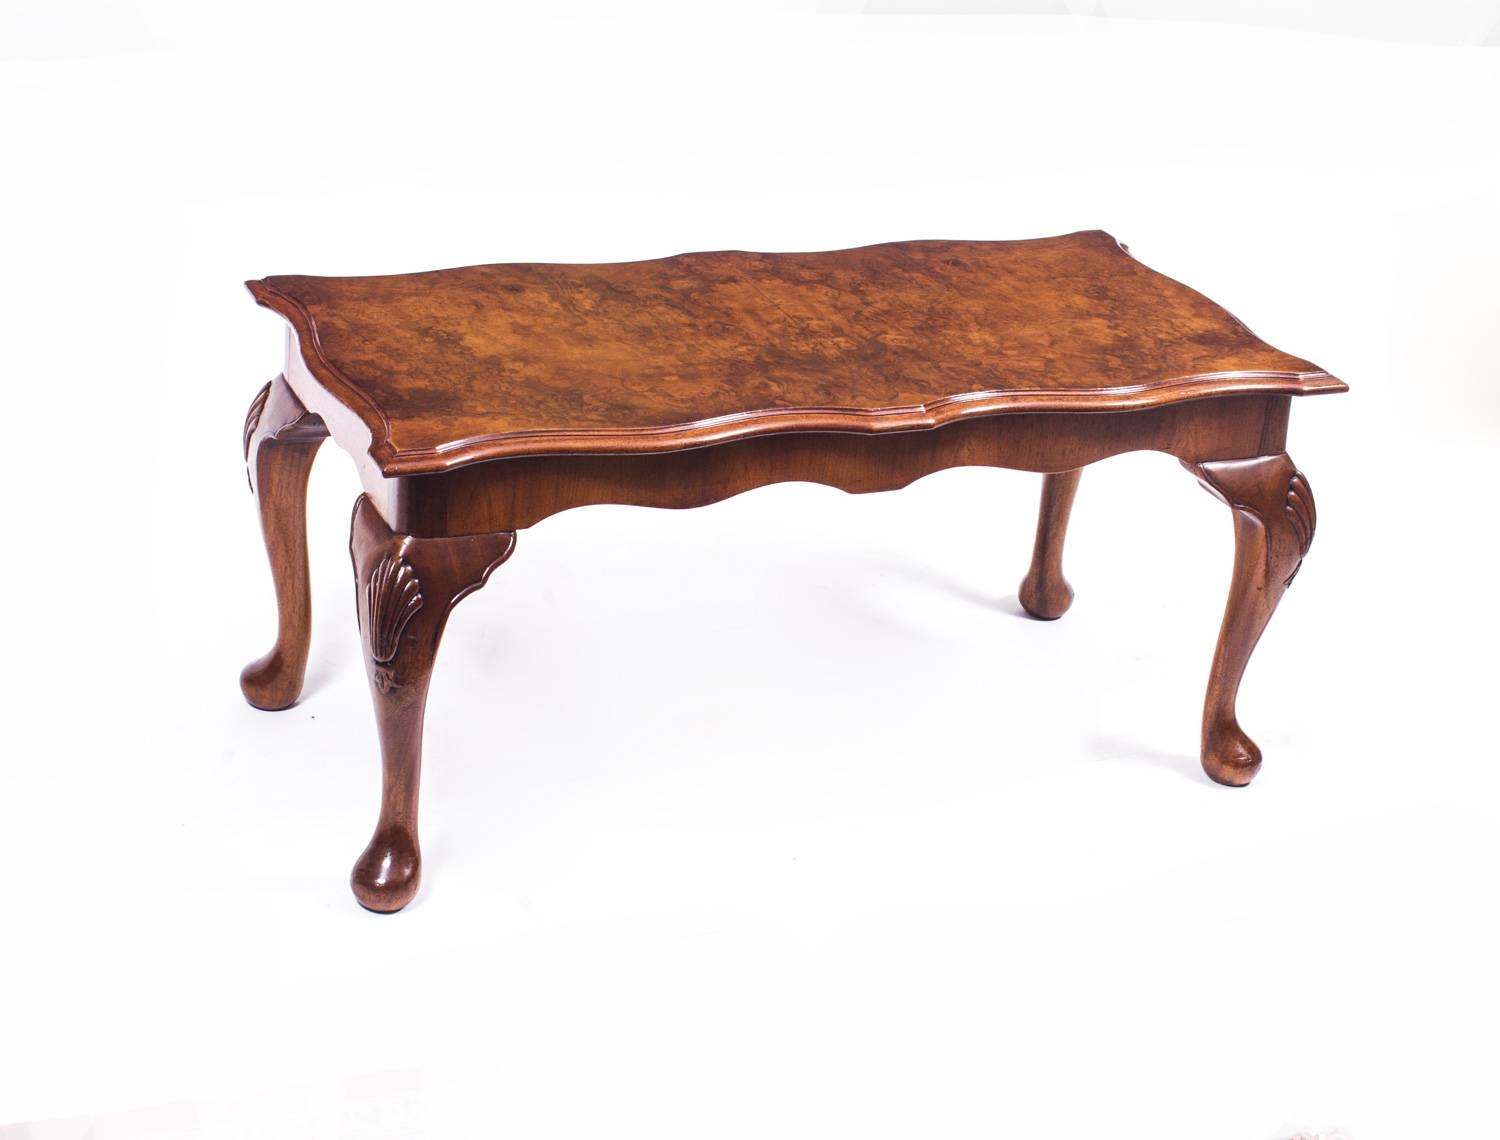 Antique Coffee Tables with regard to C Coffee Tables (Image 2 of 30)